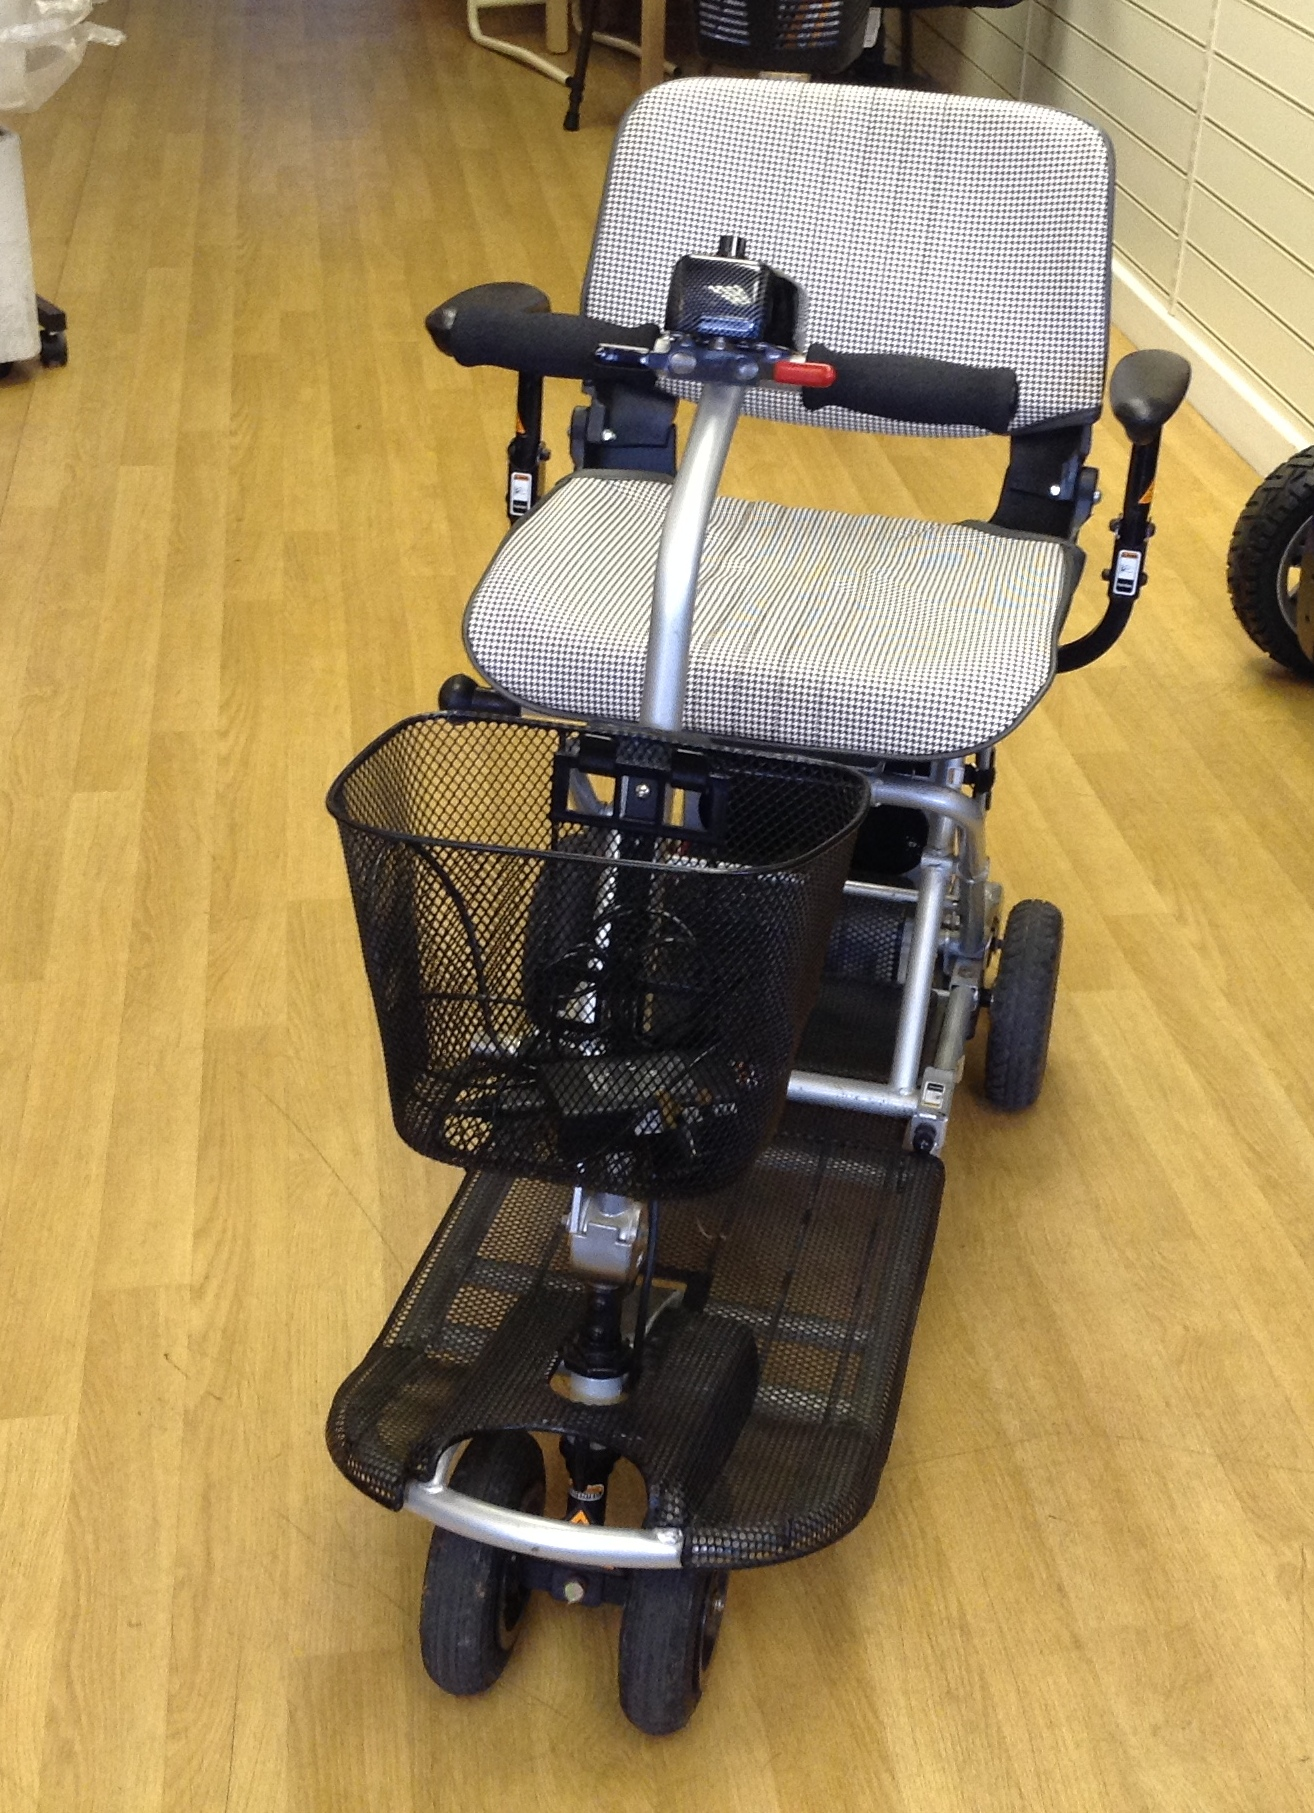 Used pride celebrity mobility scooters for sale